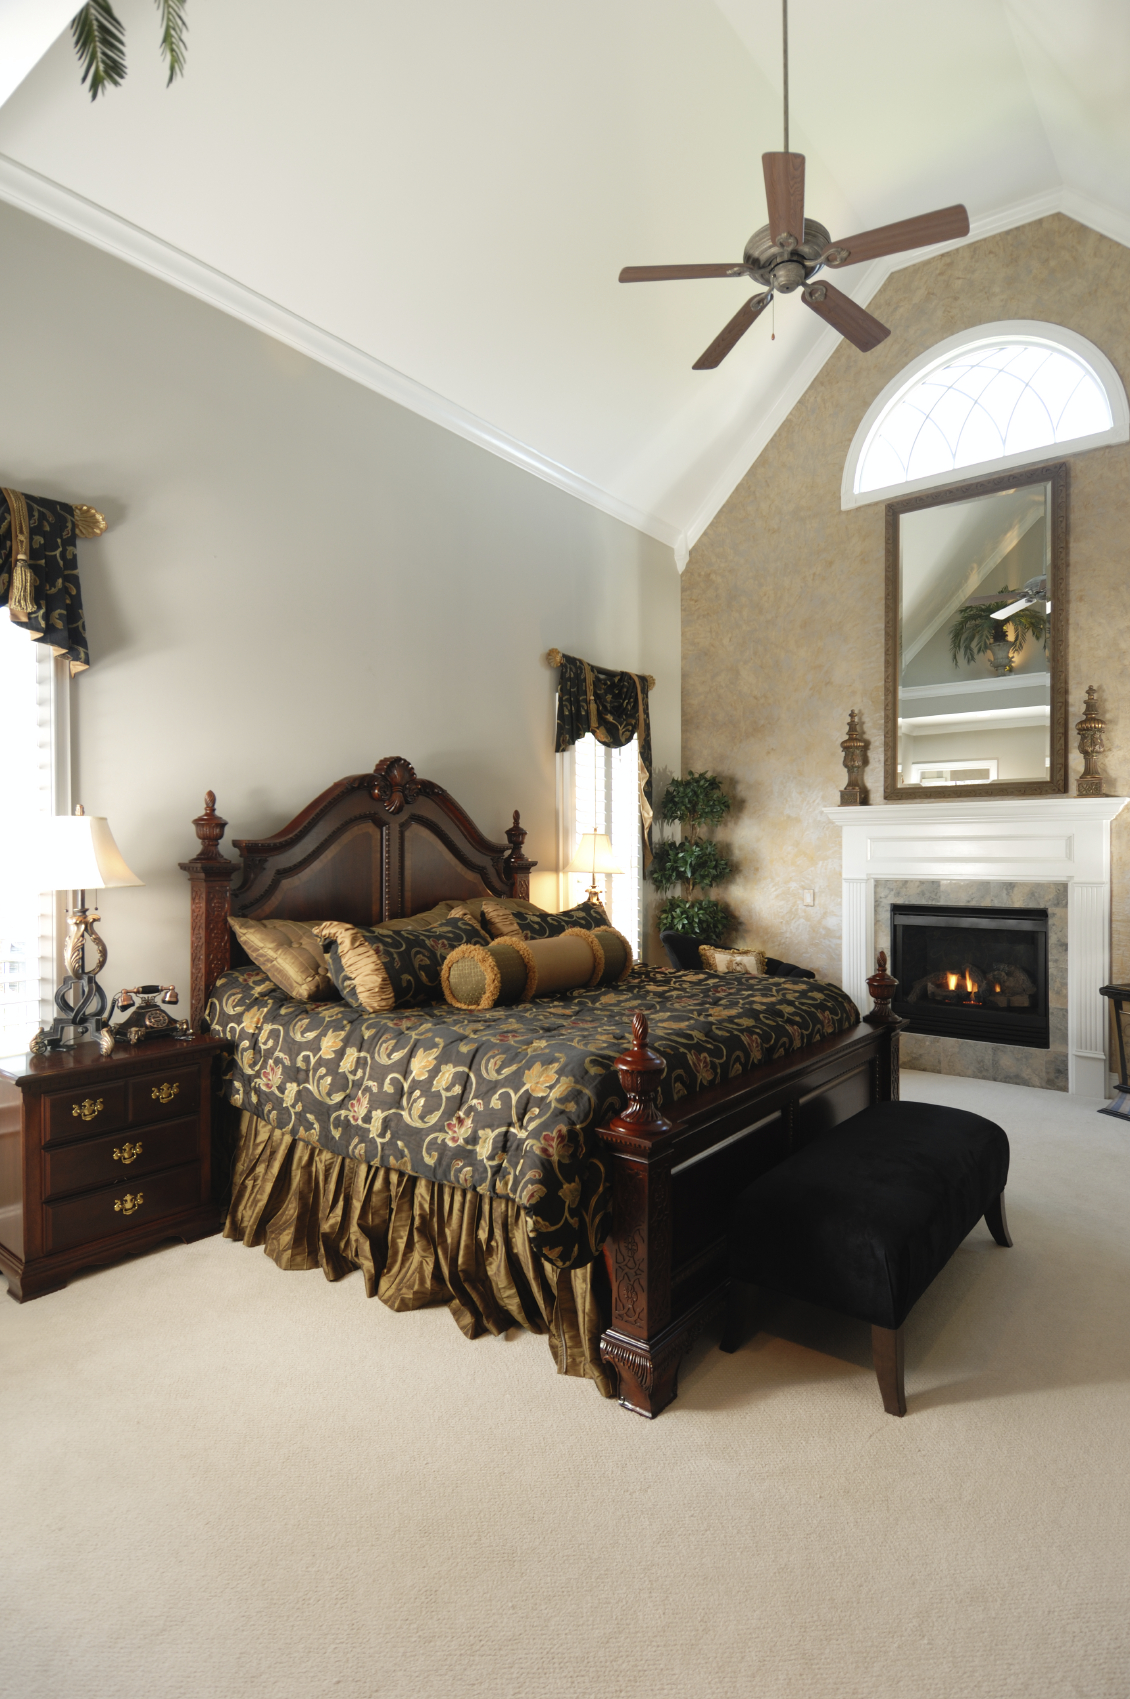 Paint For Bedrooms With Slanted Ceilings 50 Impressive Master Bedrooms With Fireplaces Photo Gallery